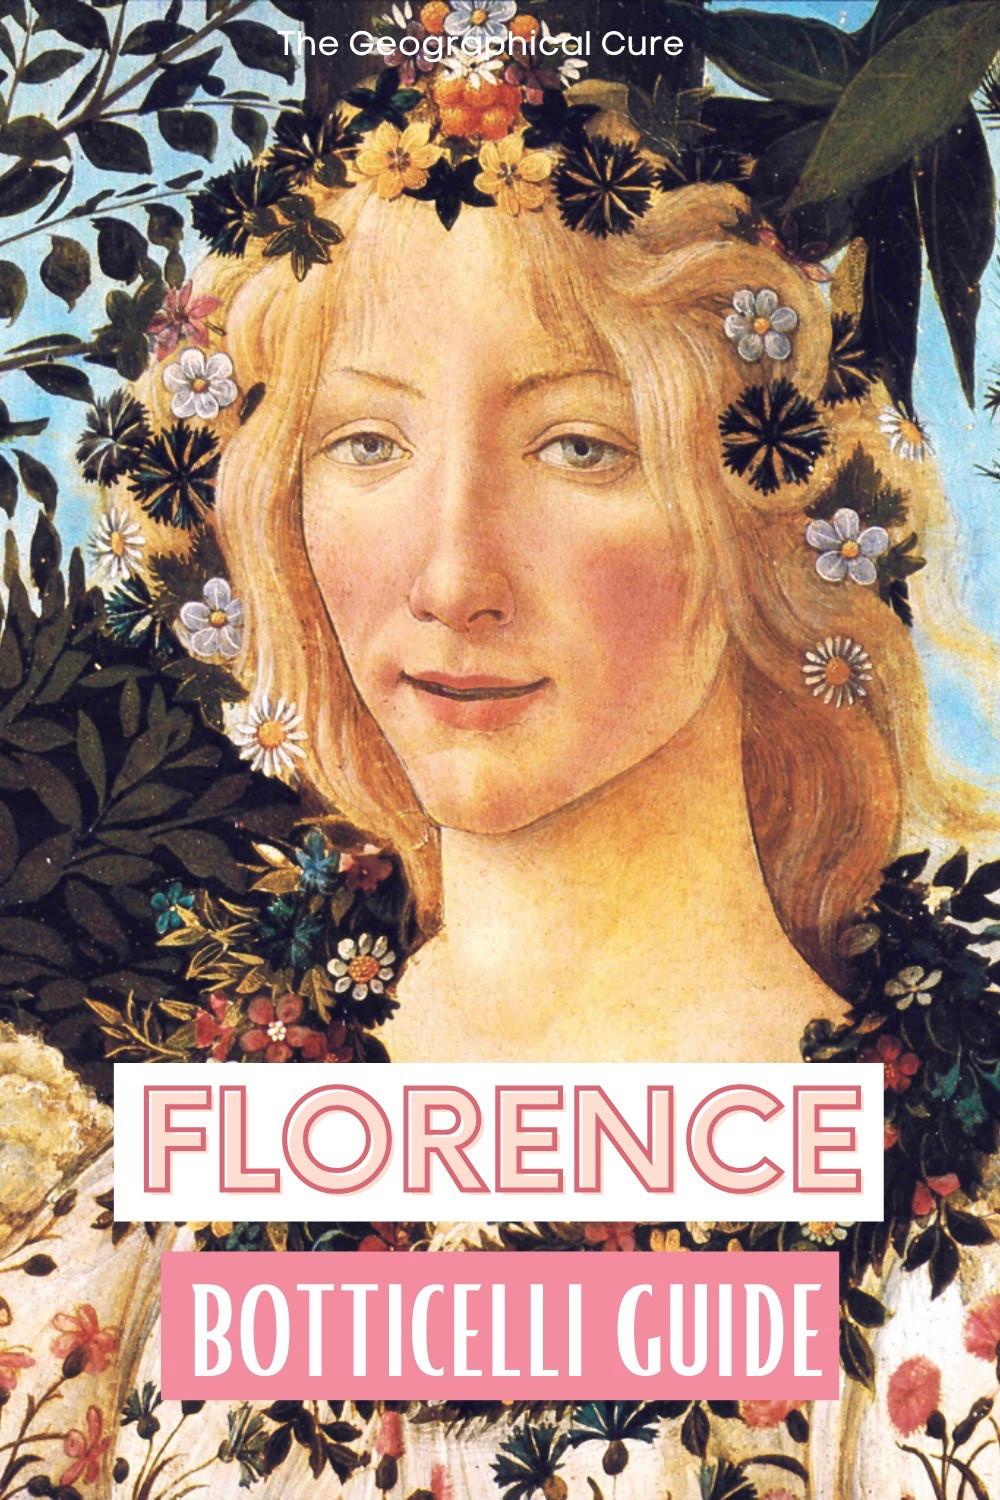 ultimate guide to Botticelli's masterpieces in Florence Italy